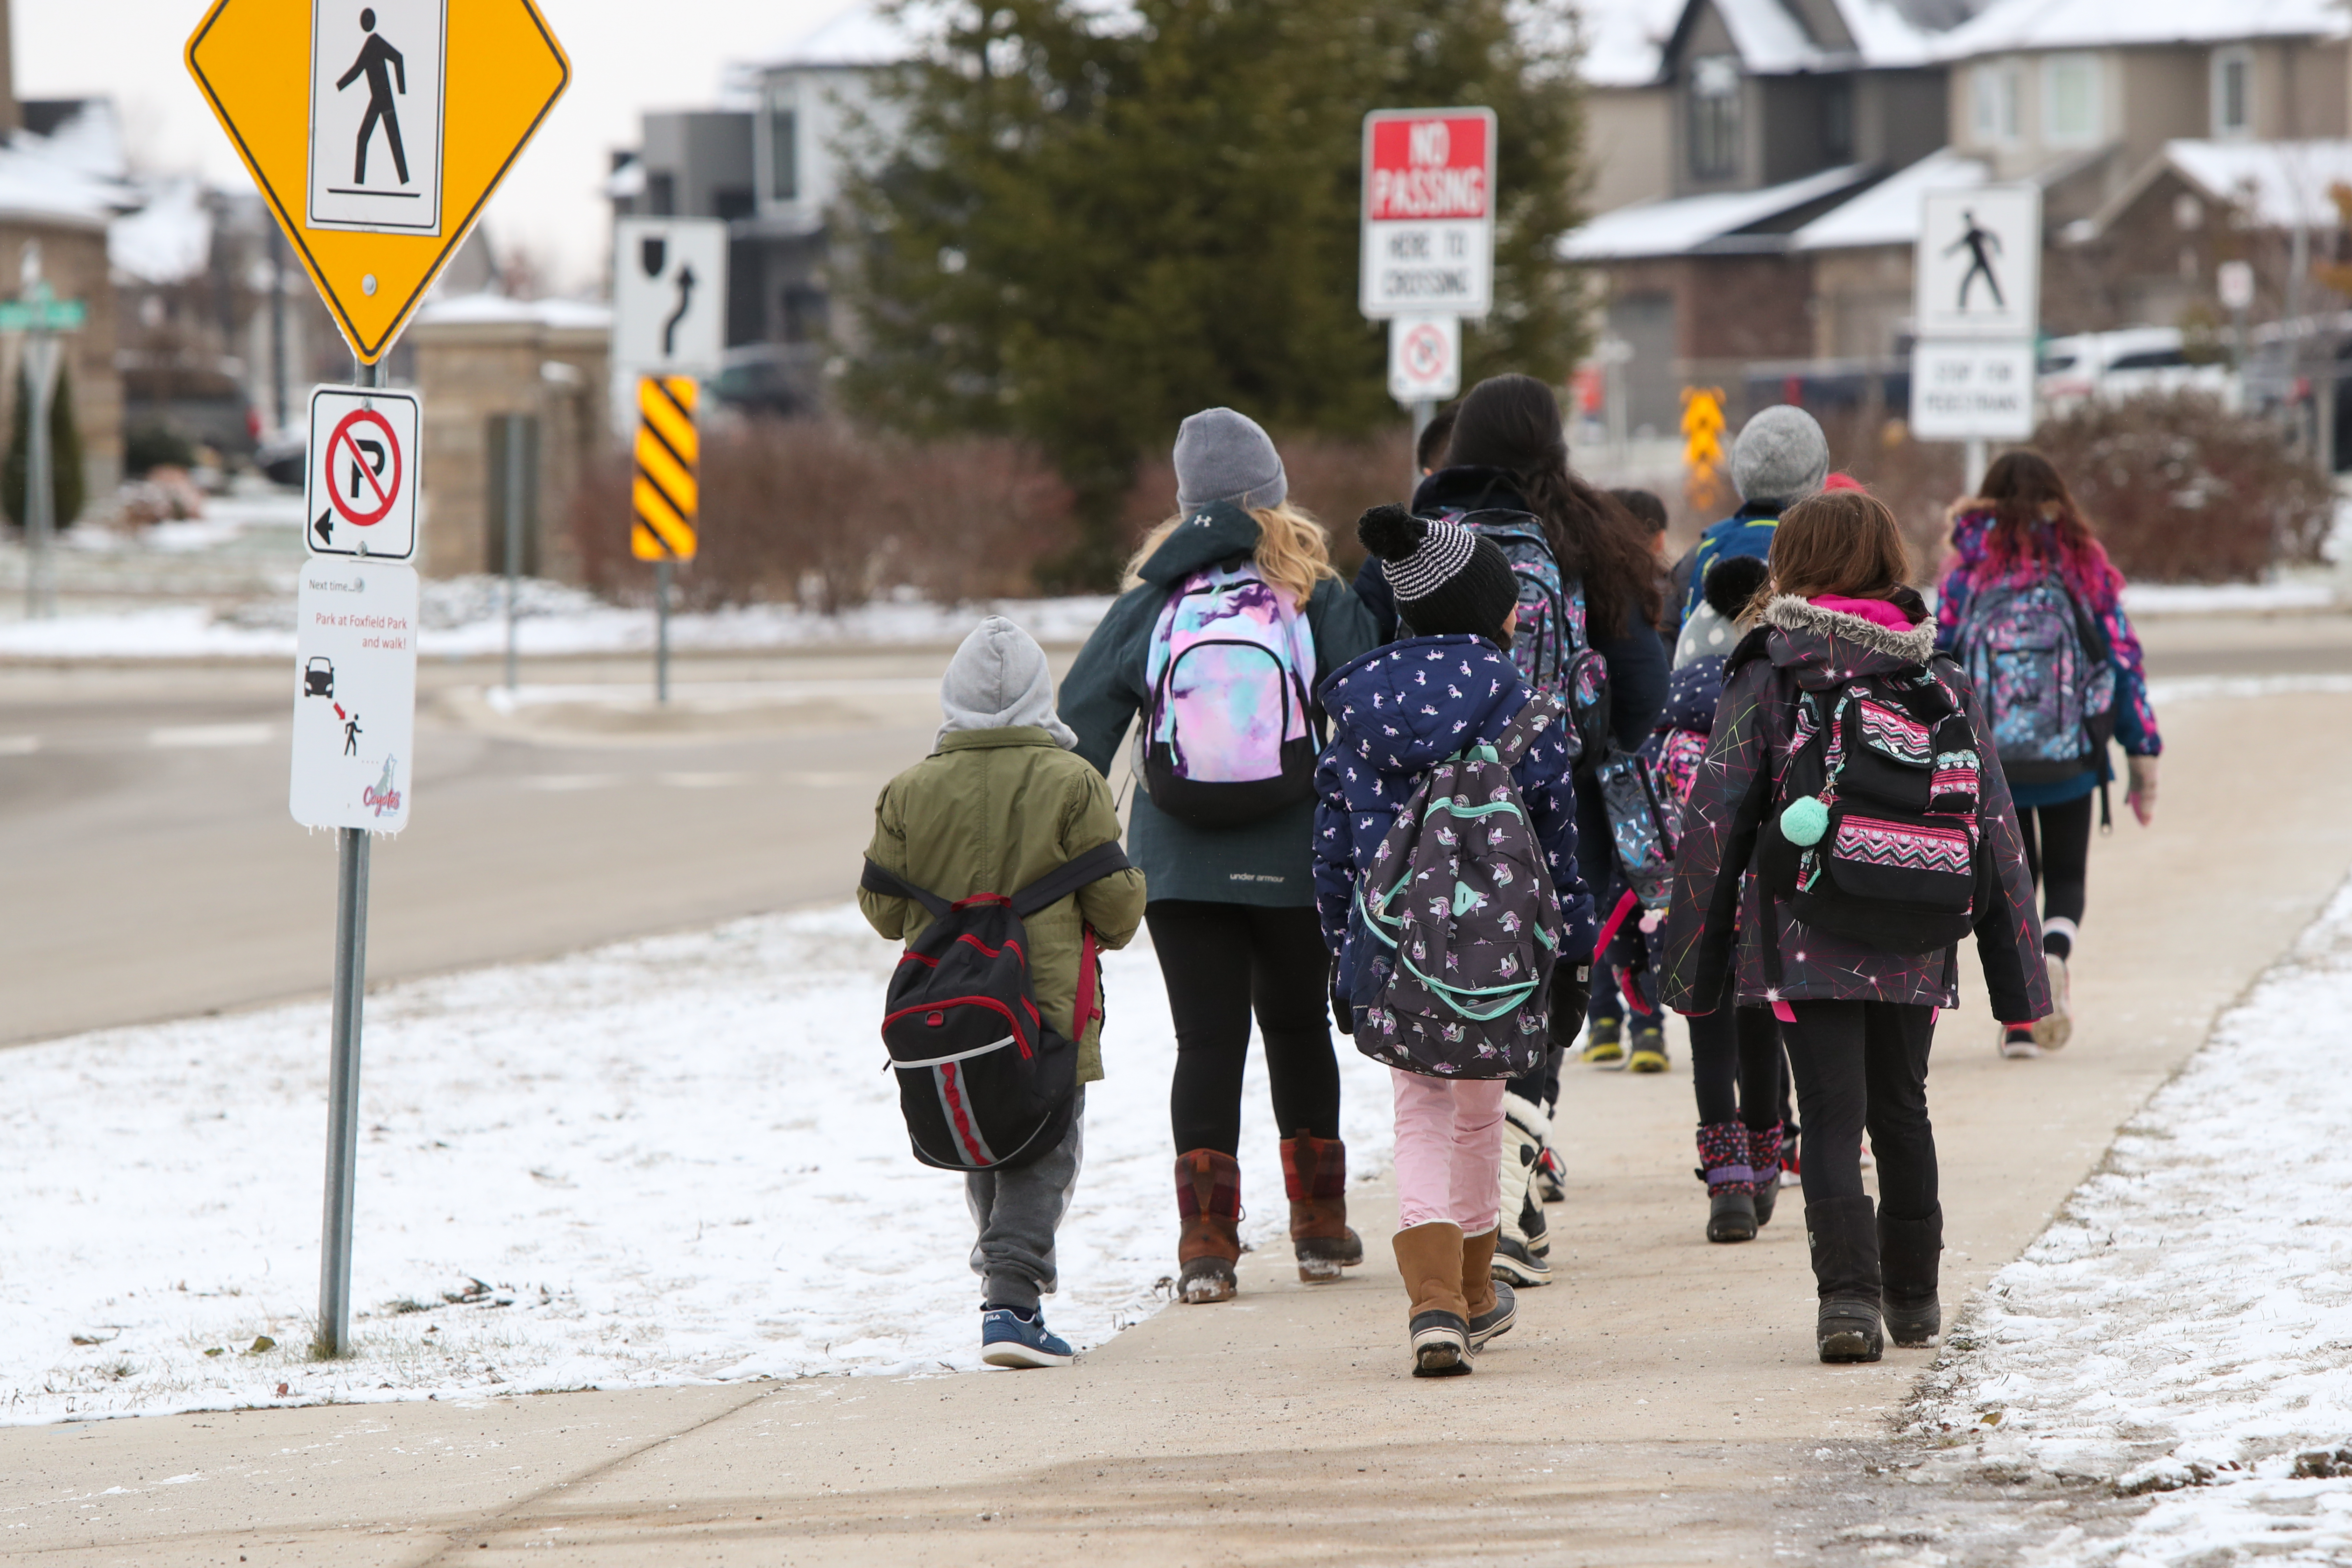 HEAL awarded CIHR Project Scheme Grant to study Active & Safe Routes to School